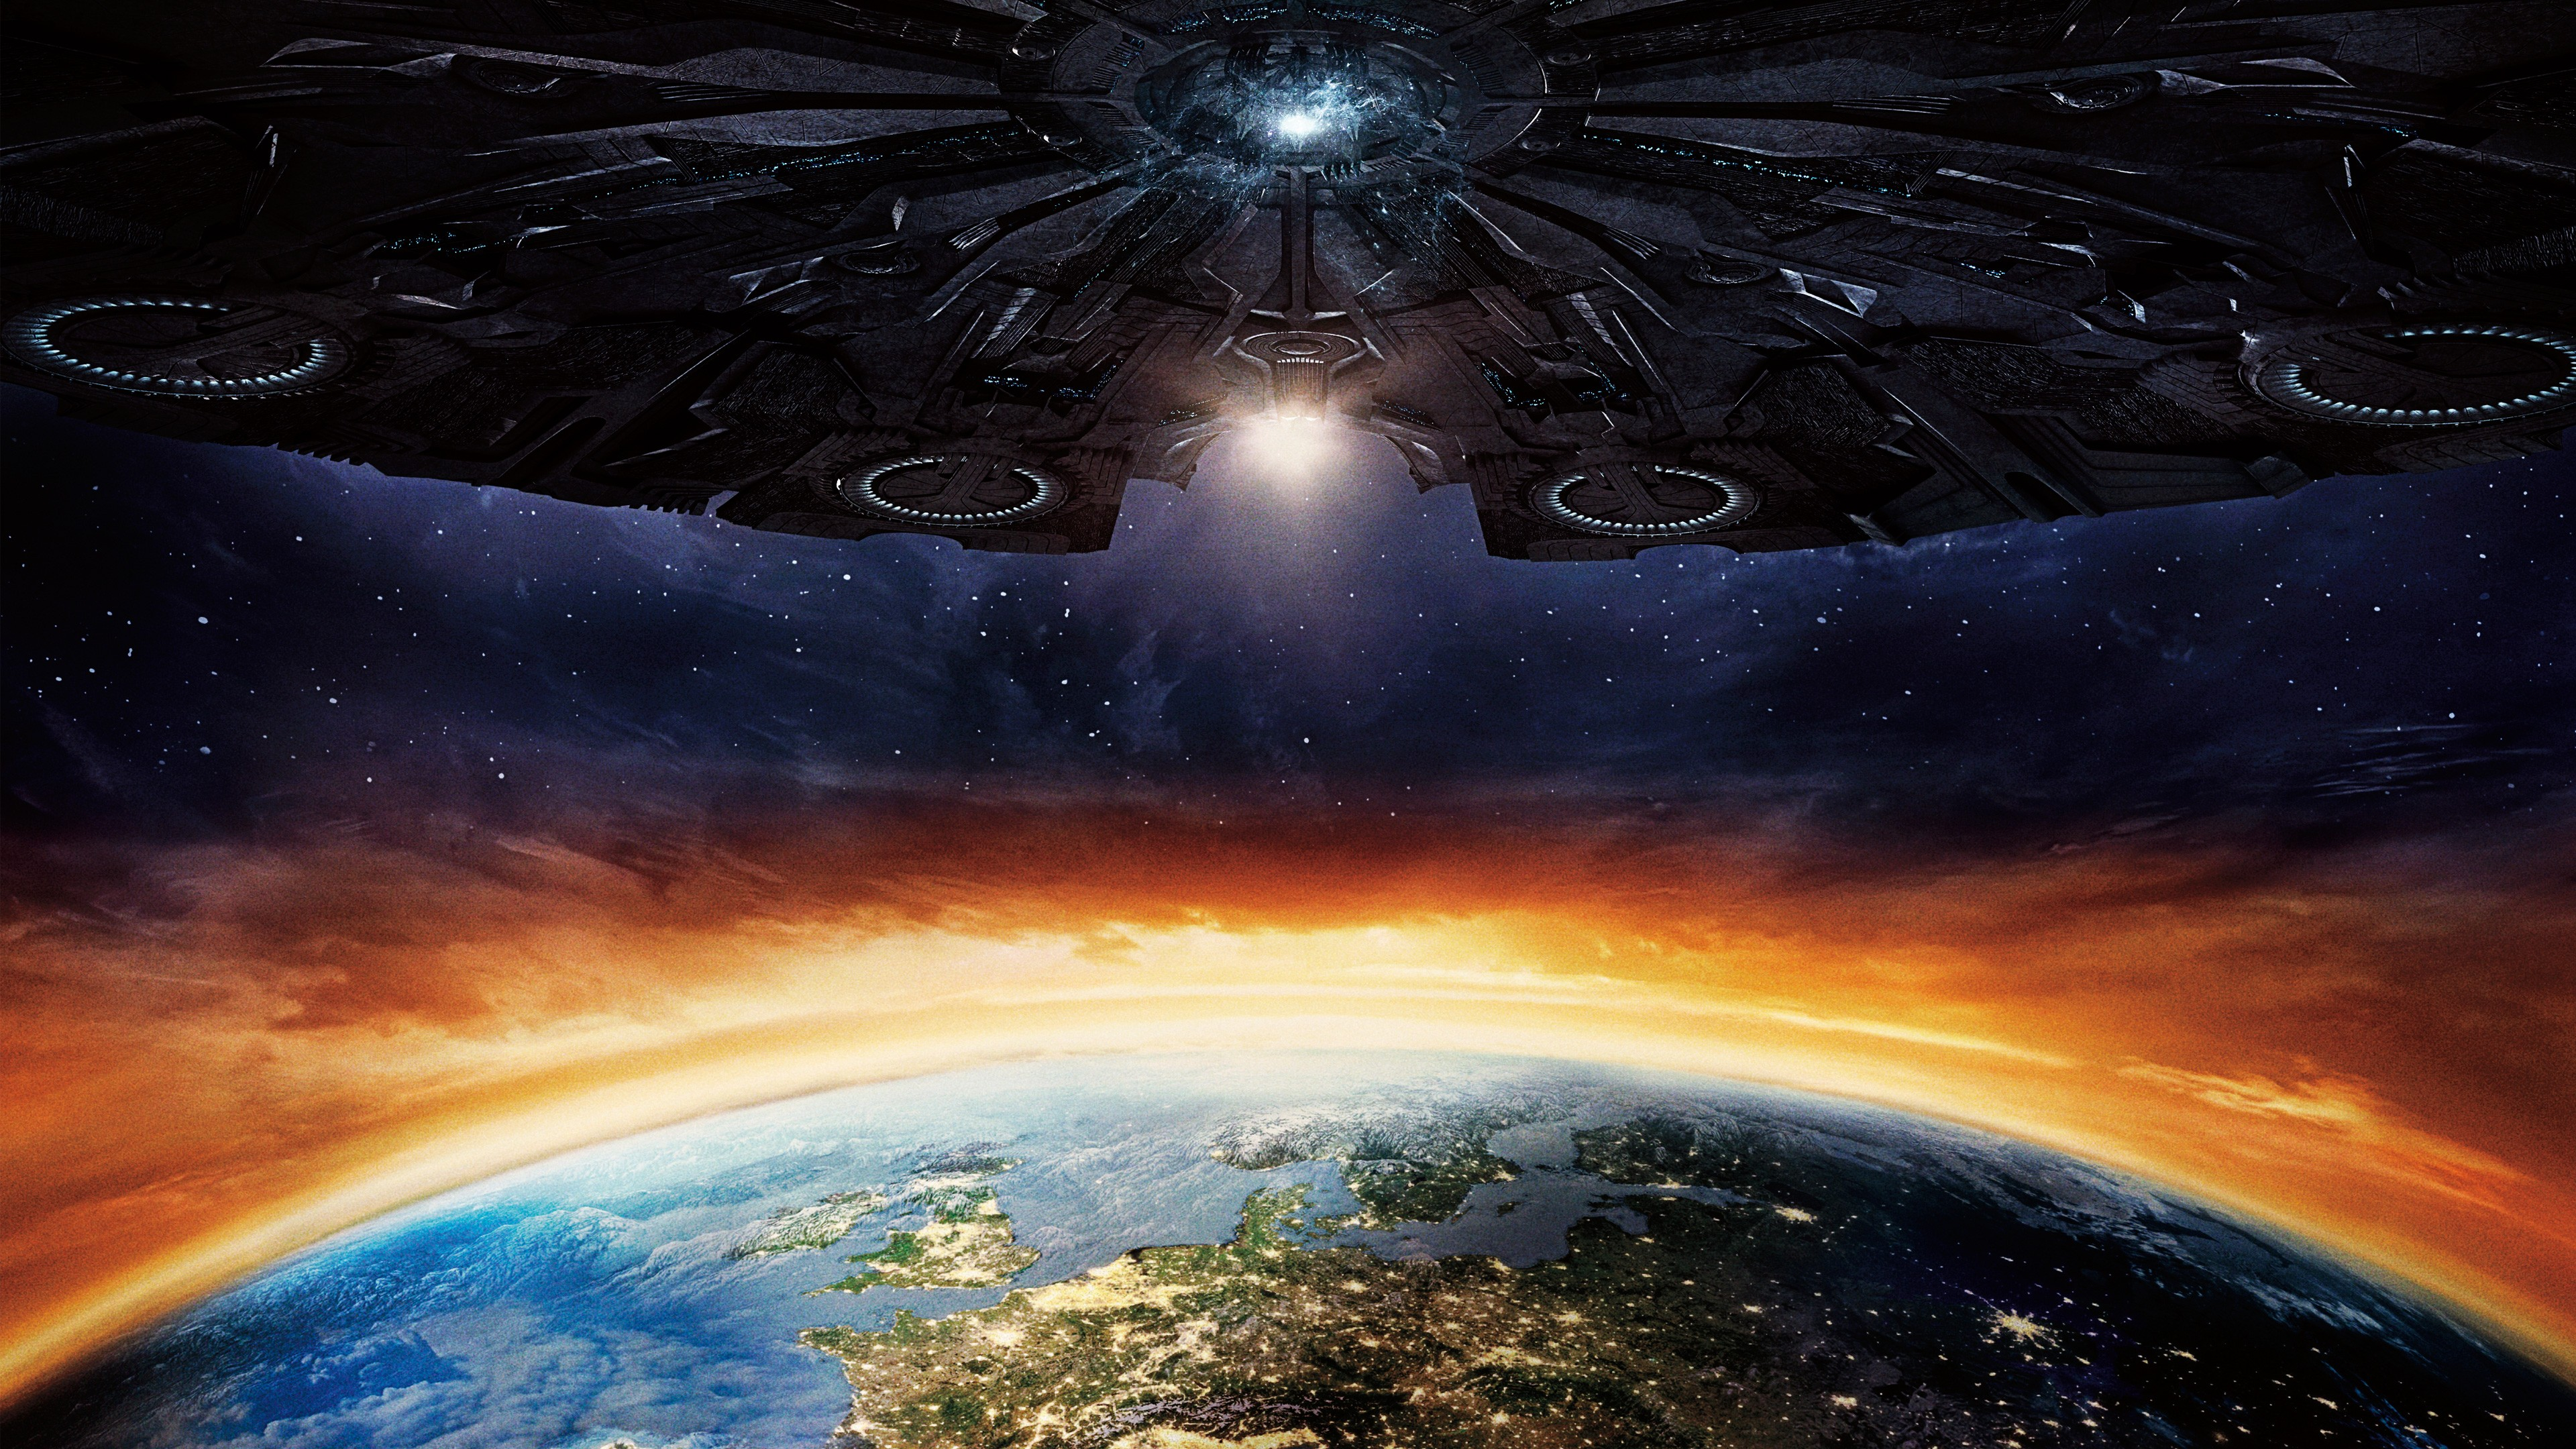 Ultra Hd Cars Wallpapers 1080p Independence Day Resurgence 2016 Wallpapers Hd